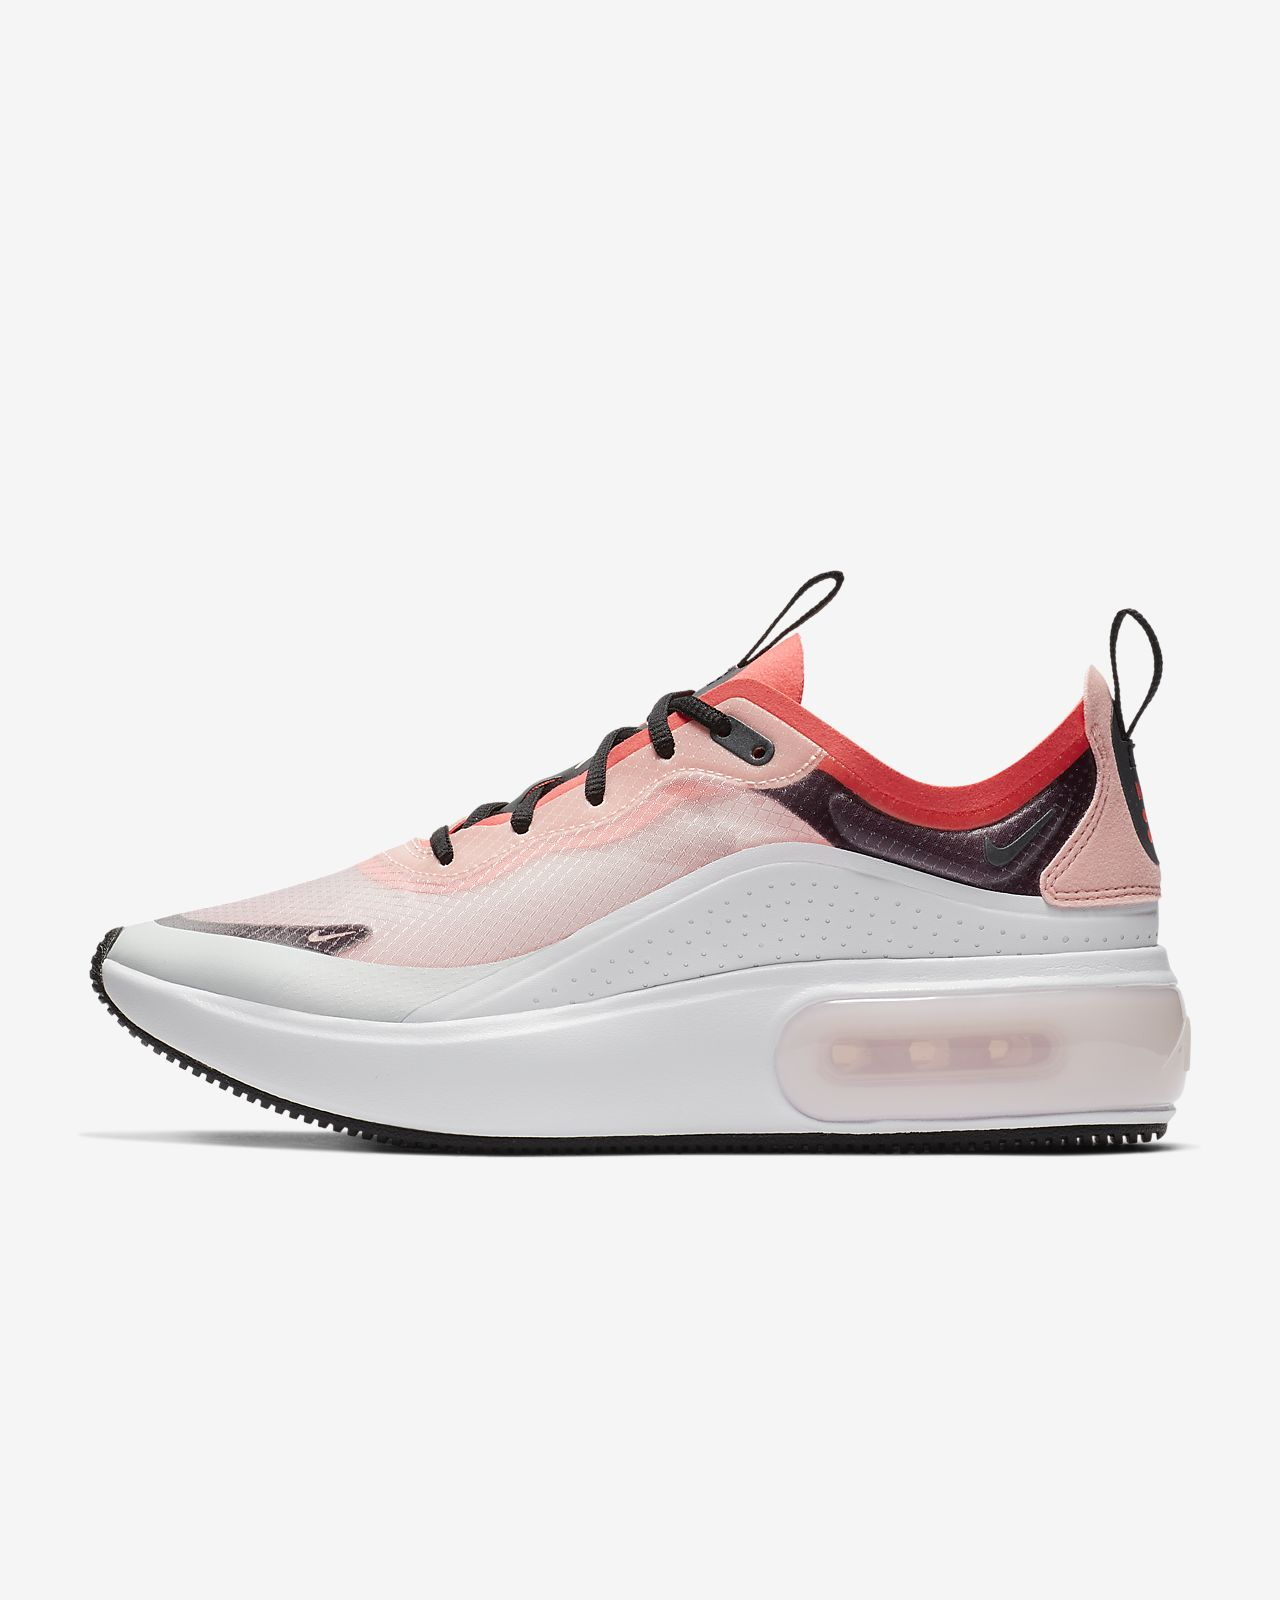 low priced 0d722 0ed78 Shoe. Nike Air Max Dia SE QS